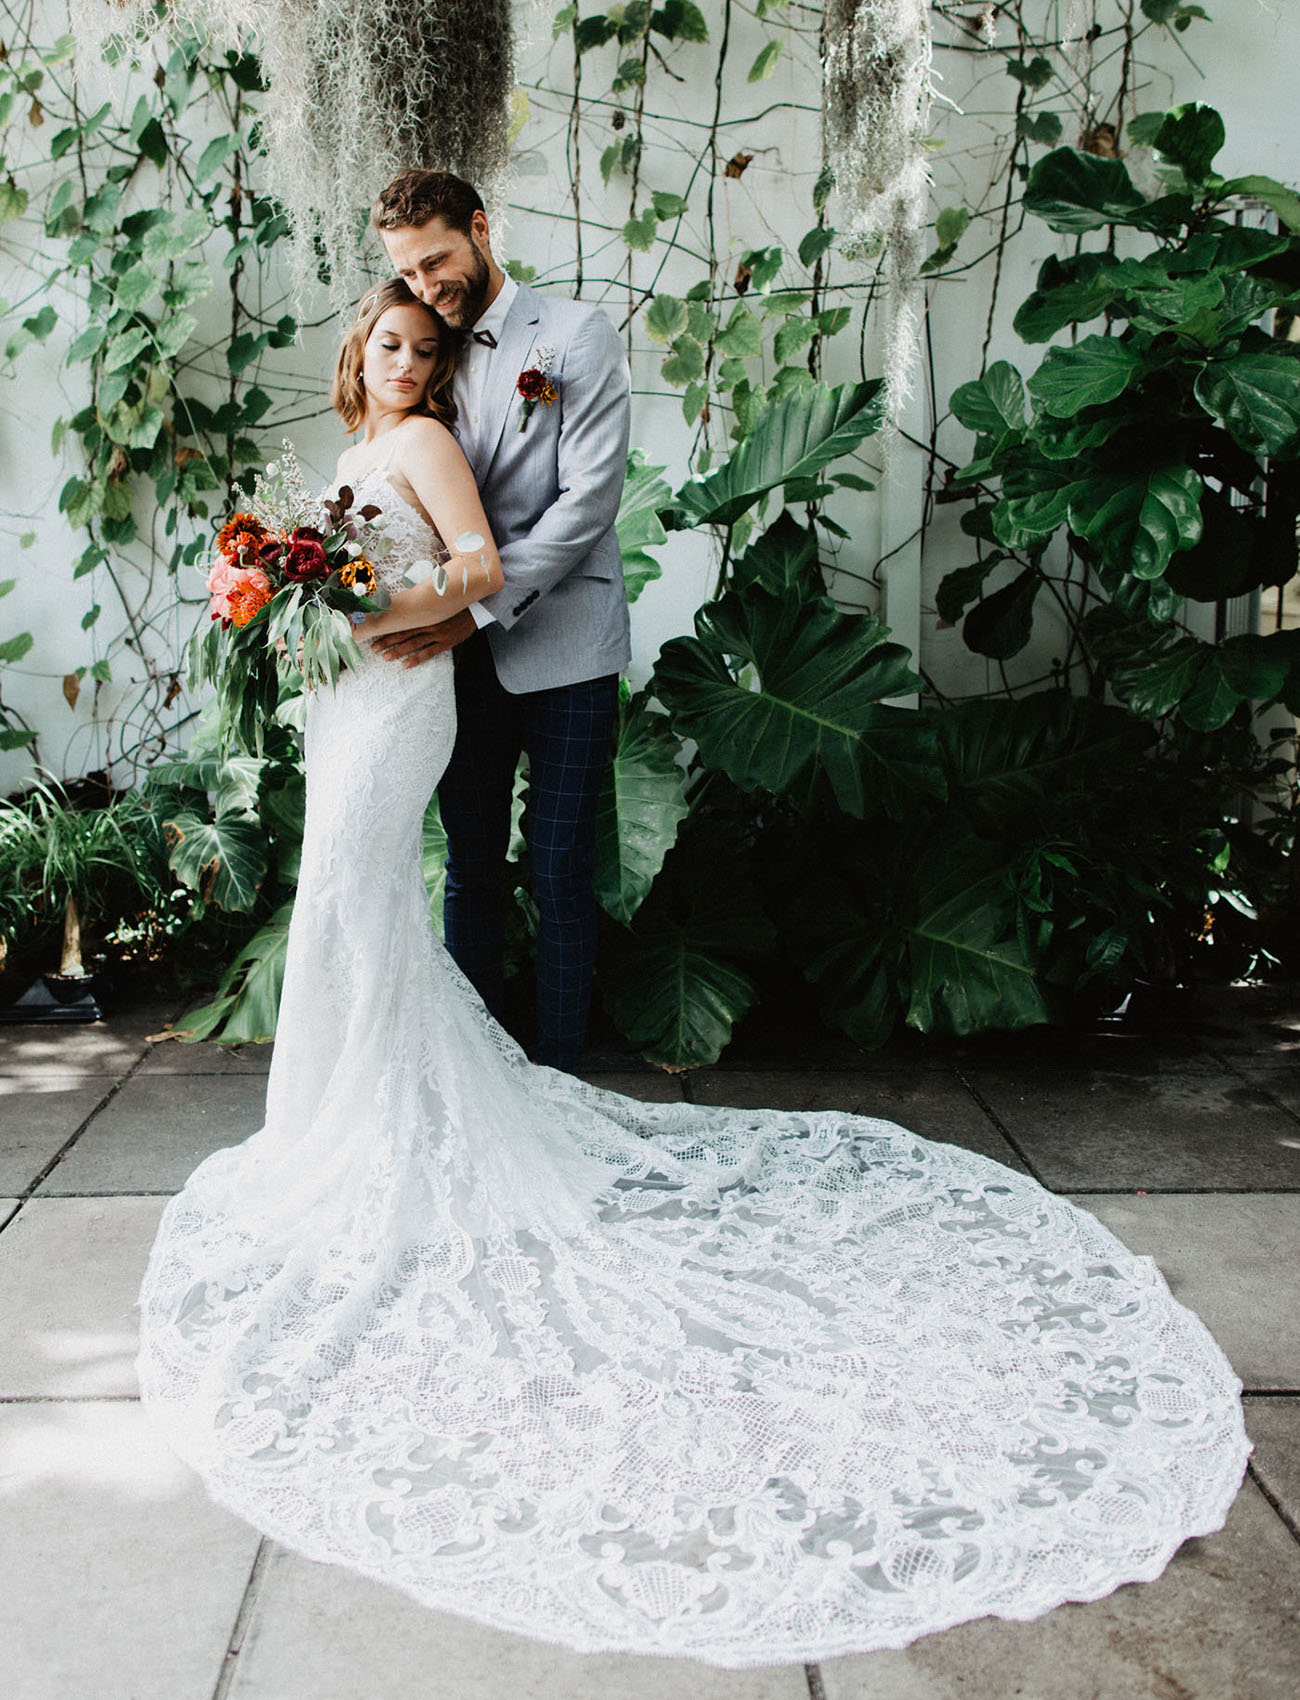 This wedding shoot was a boho artistic one, with much greenery, cool blooms and chic touches